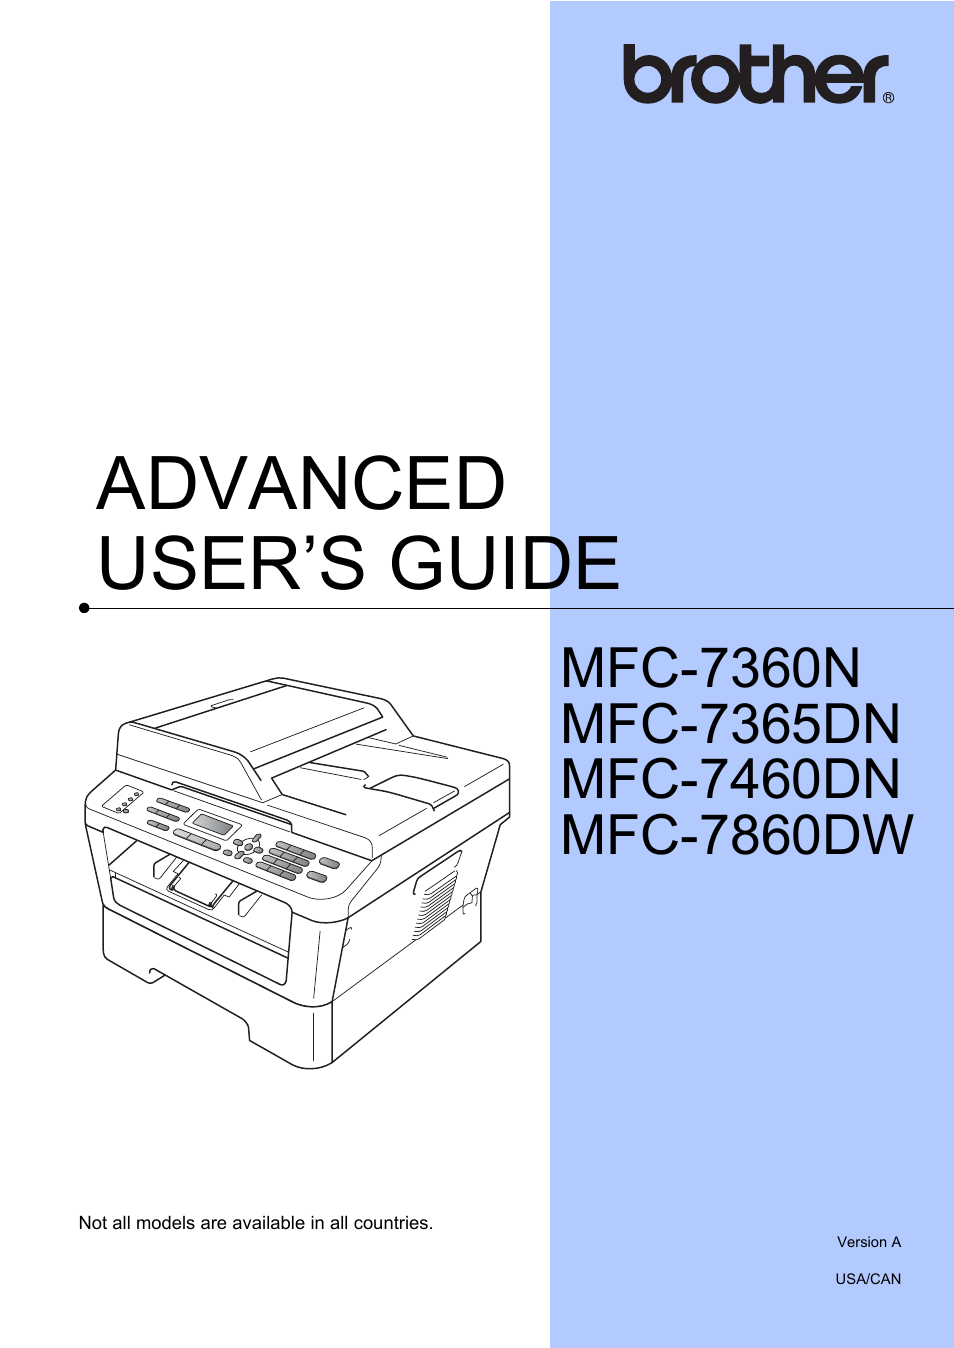 brother mfc 7460dn user manual 76 pages also for mfc 7860dw rh manualsdir com Back of Brother 7860DW Brother 7860DW Wireless Setup